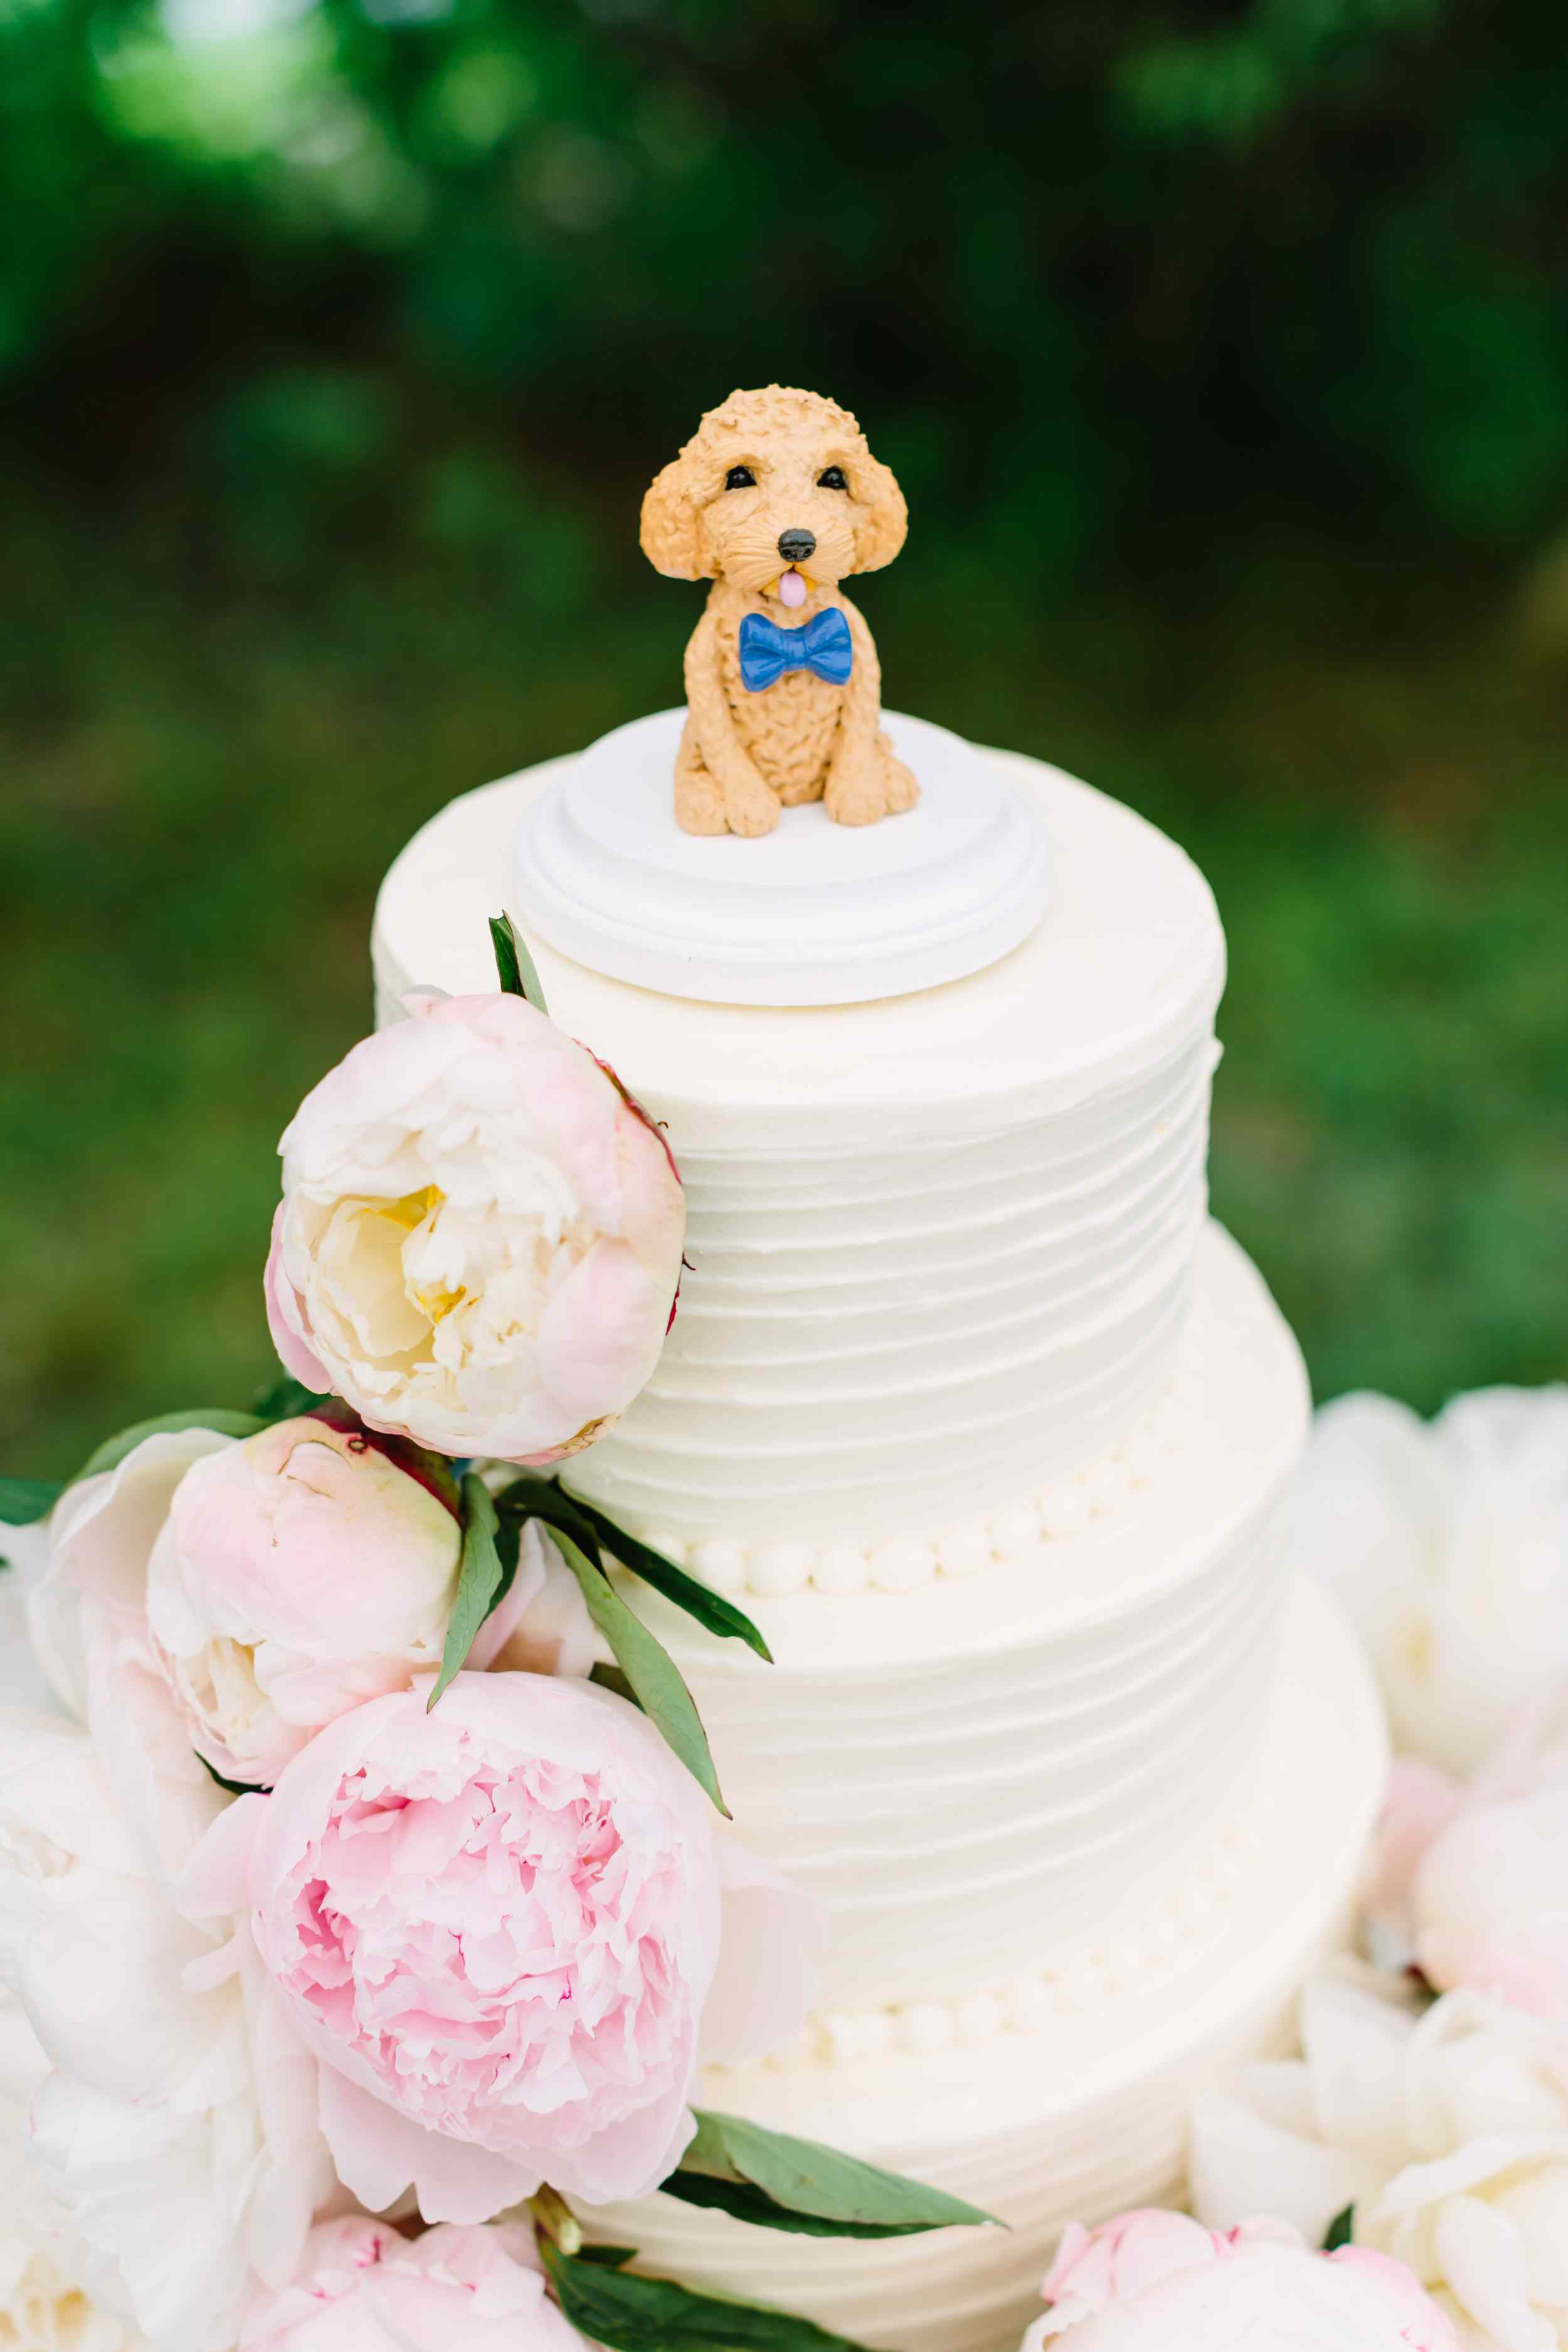 Wedding Cake with Dog Topper